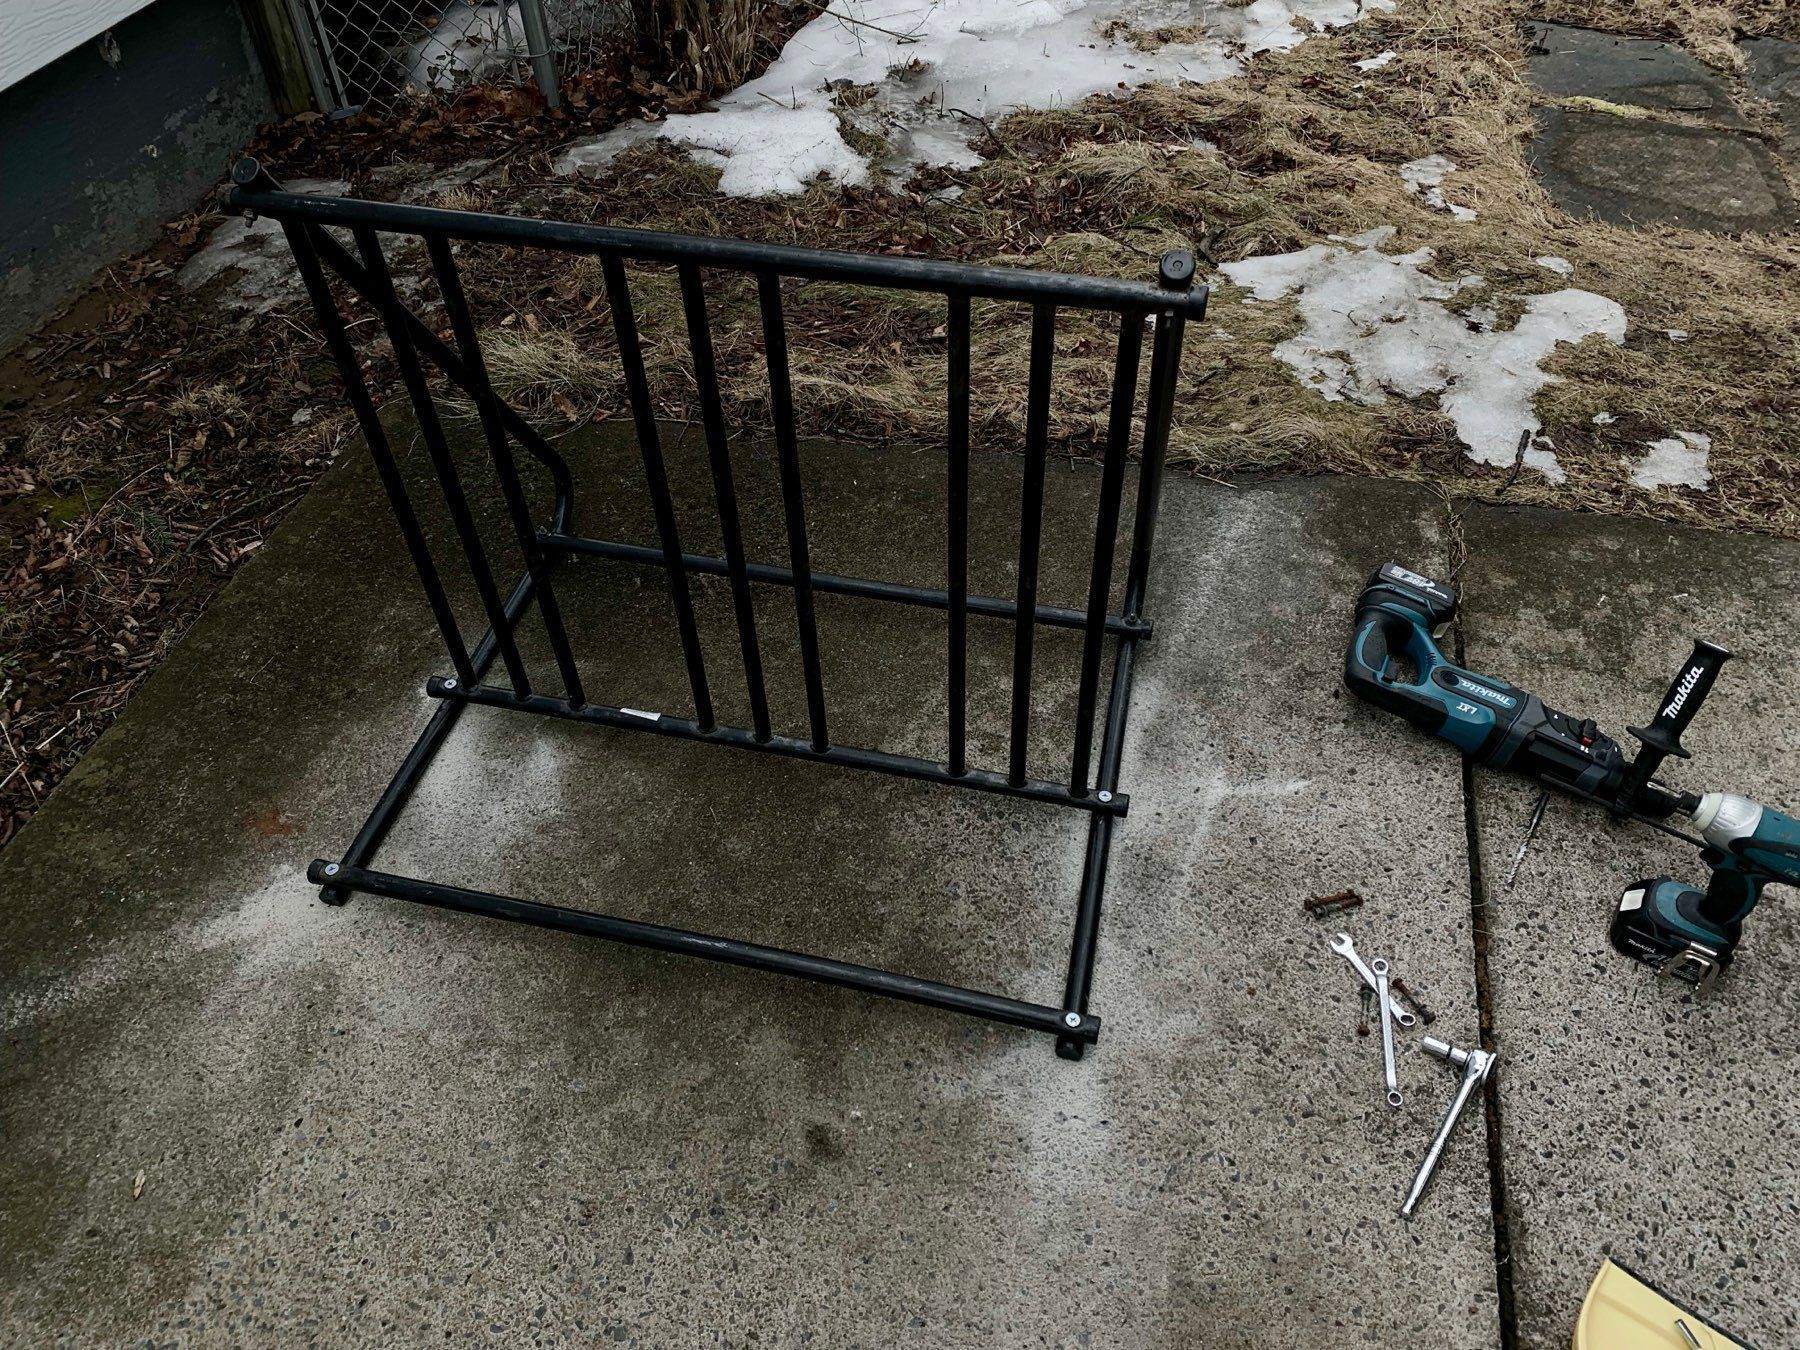 A bike rack on a concrete driveway with tools around it